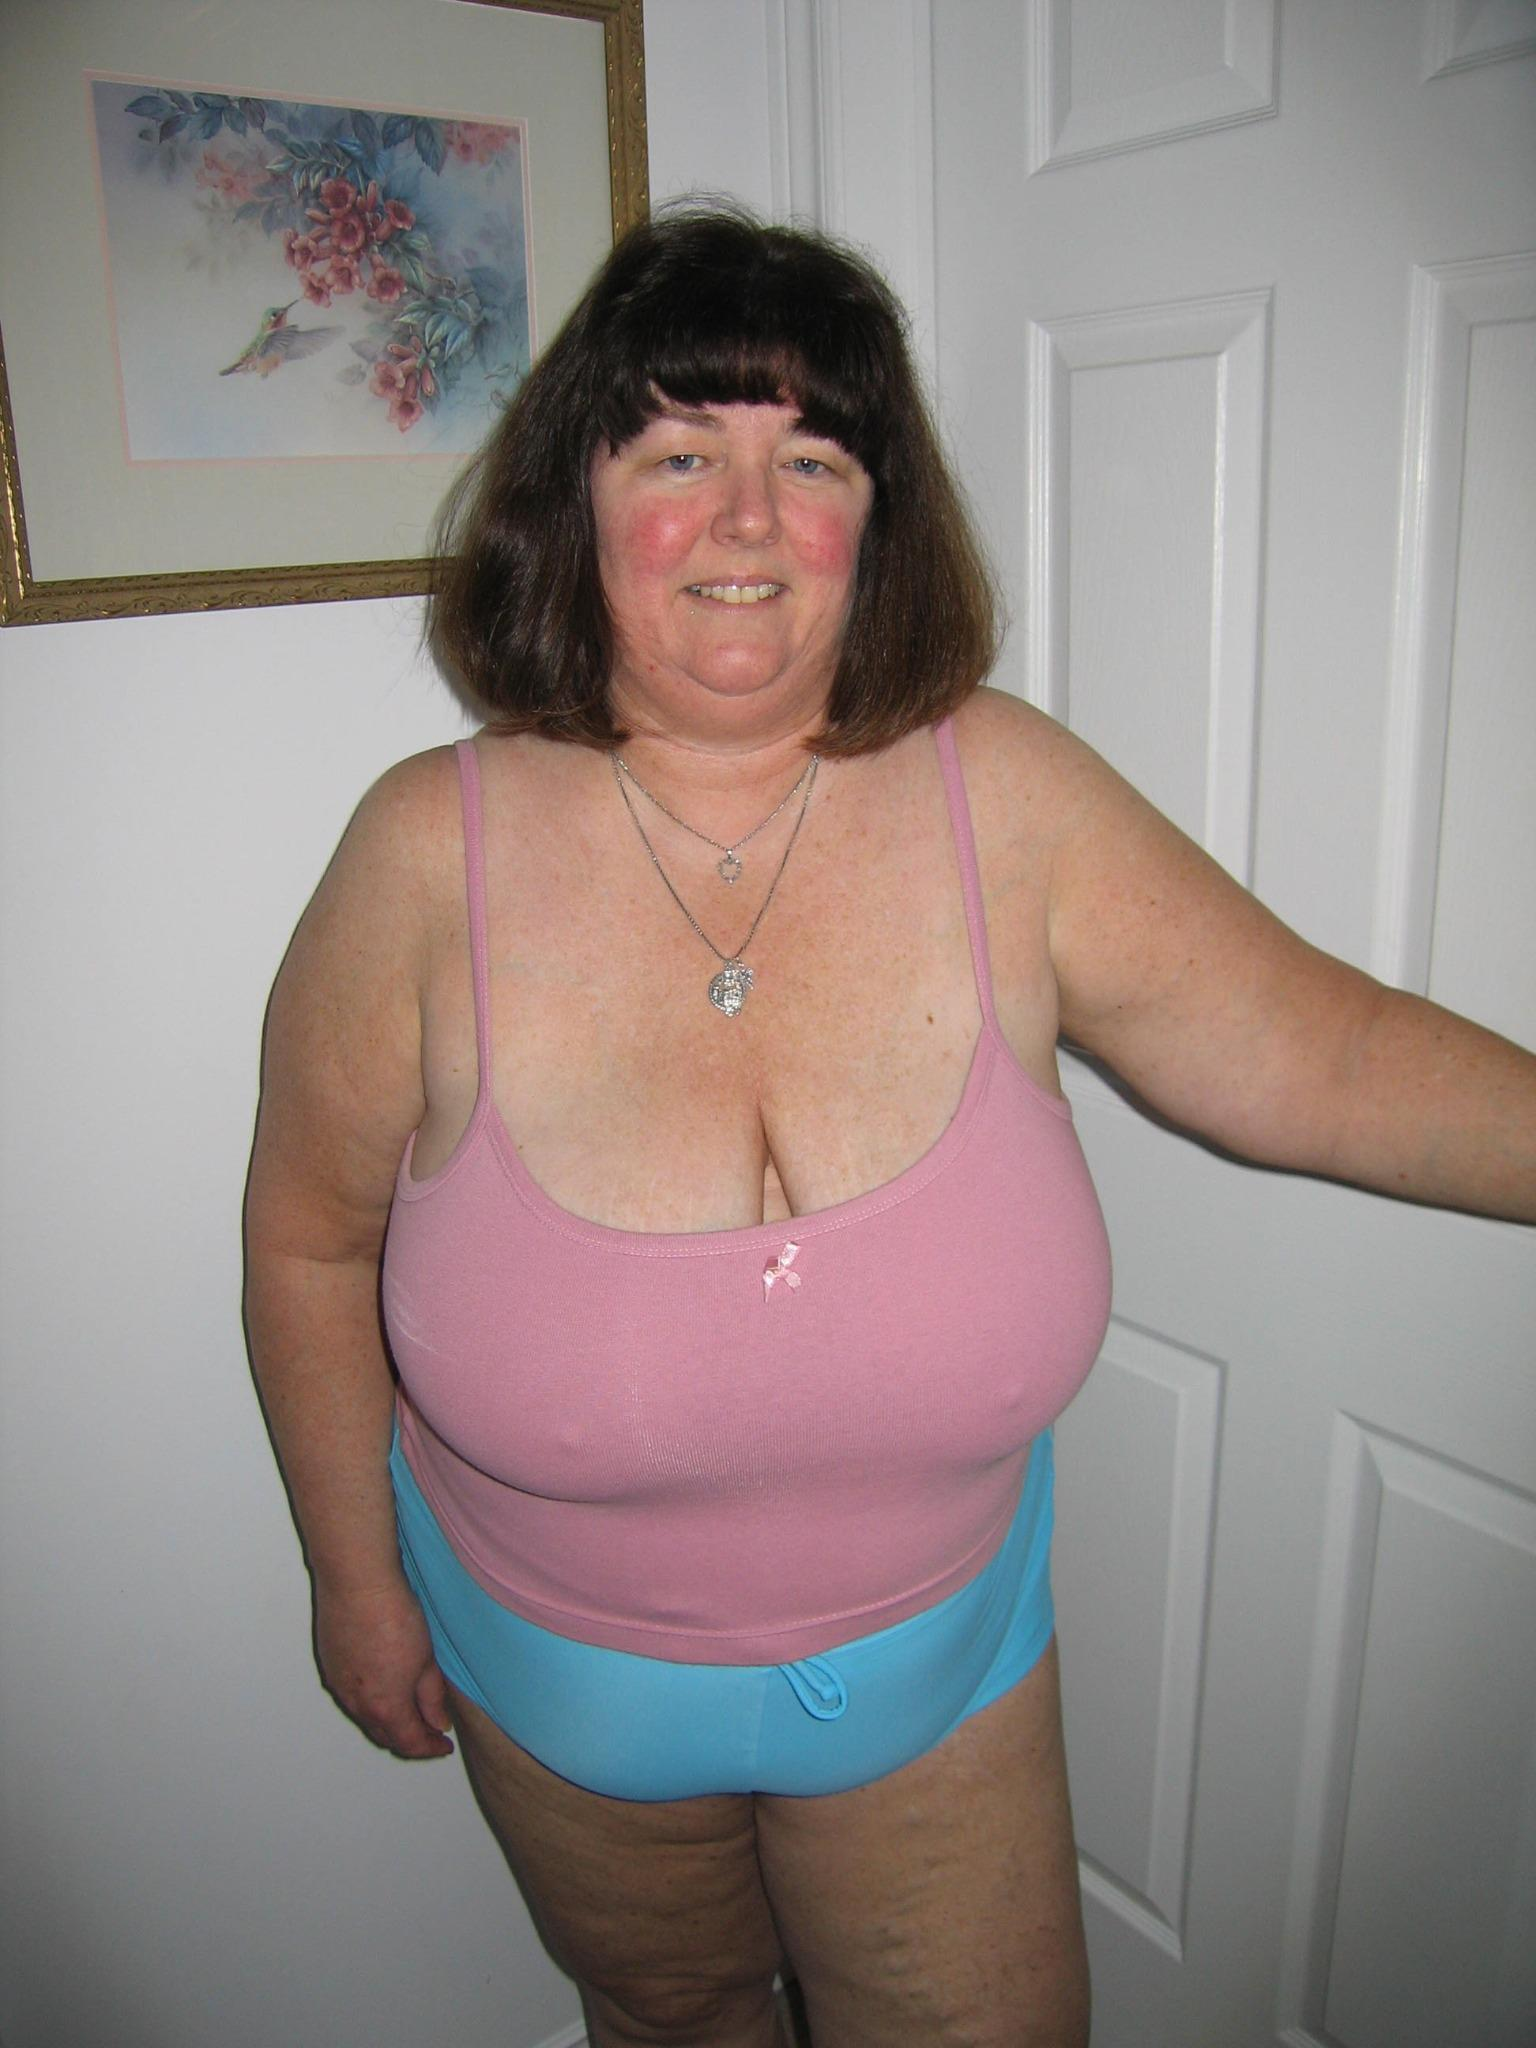 Chubby amateur mature big tits opinion. Your